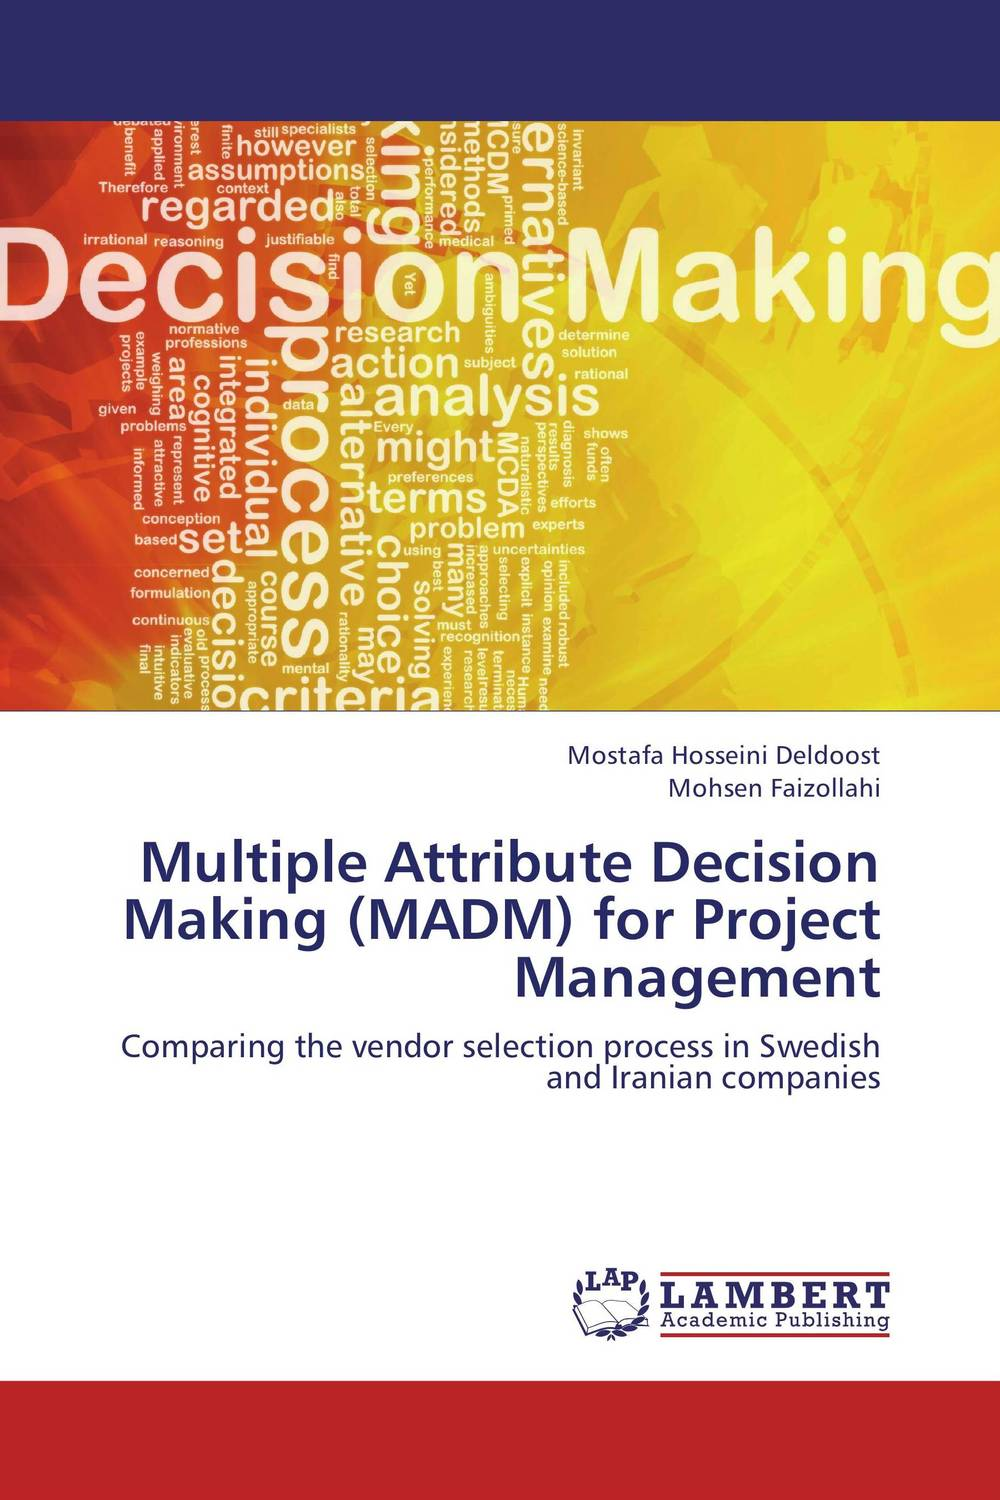 Multiple Attribute Decision Making (MADM) for Project Management yuri raydugin project risk management essential methods for project teams and decision makers